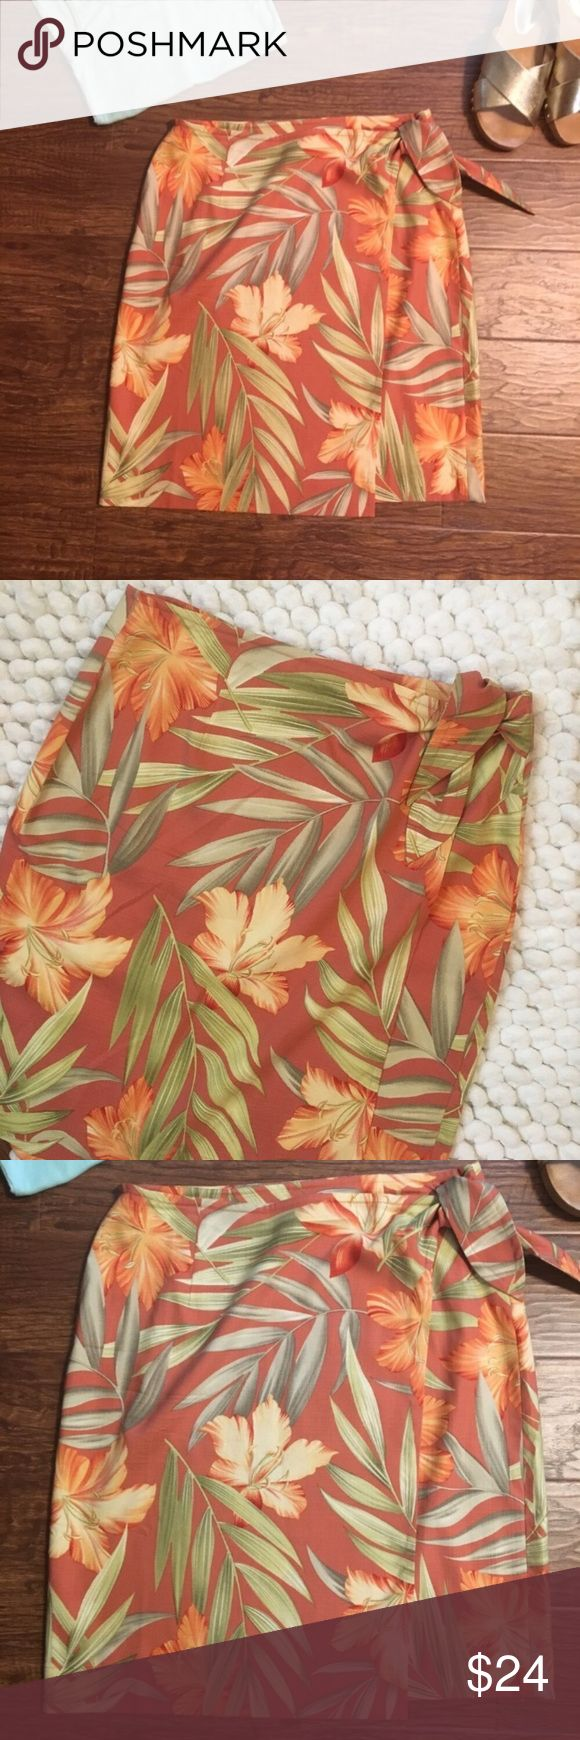 """Tommy Bahama floral wrap skirt size small Never worn. Beautiful tommy bahama tropical print silk wrap skirt. Ties at side. 2 inner buttons to adjust. Just above the knee. Perfect vacation item! Coral with splashes of green and yellow. Size small.  🚫MEASUREMENTS LAYING FLAT: Waist: 15"""" Hips: 20"""" Length: 21"""" The measurements are tied at the side and laying flat and also there are two inner buttons, and this measurement was taken buttoned on the smaller adjustment.        040817 Tommy Bahama…"""